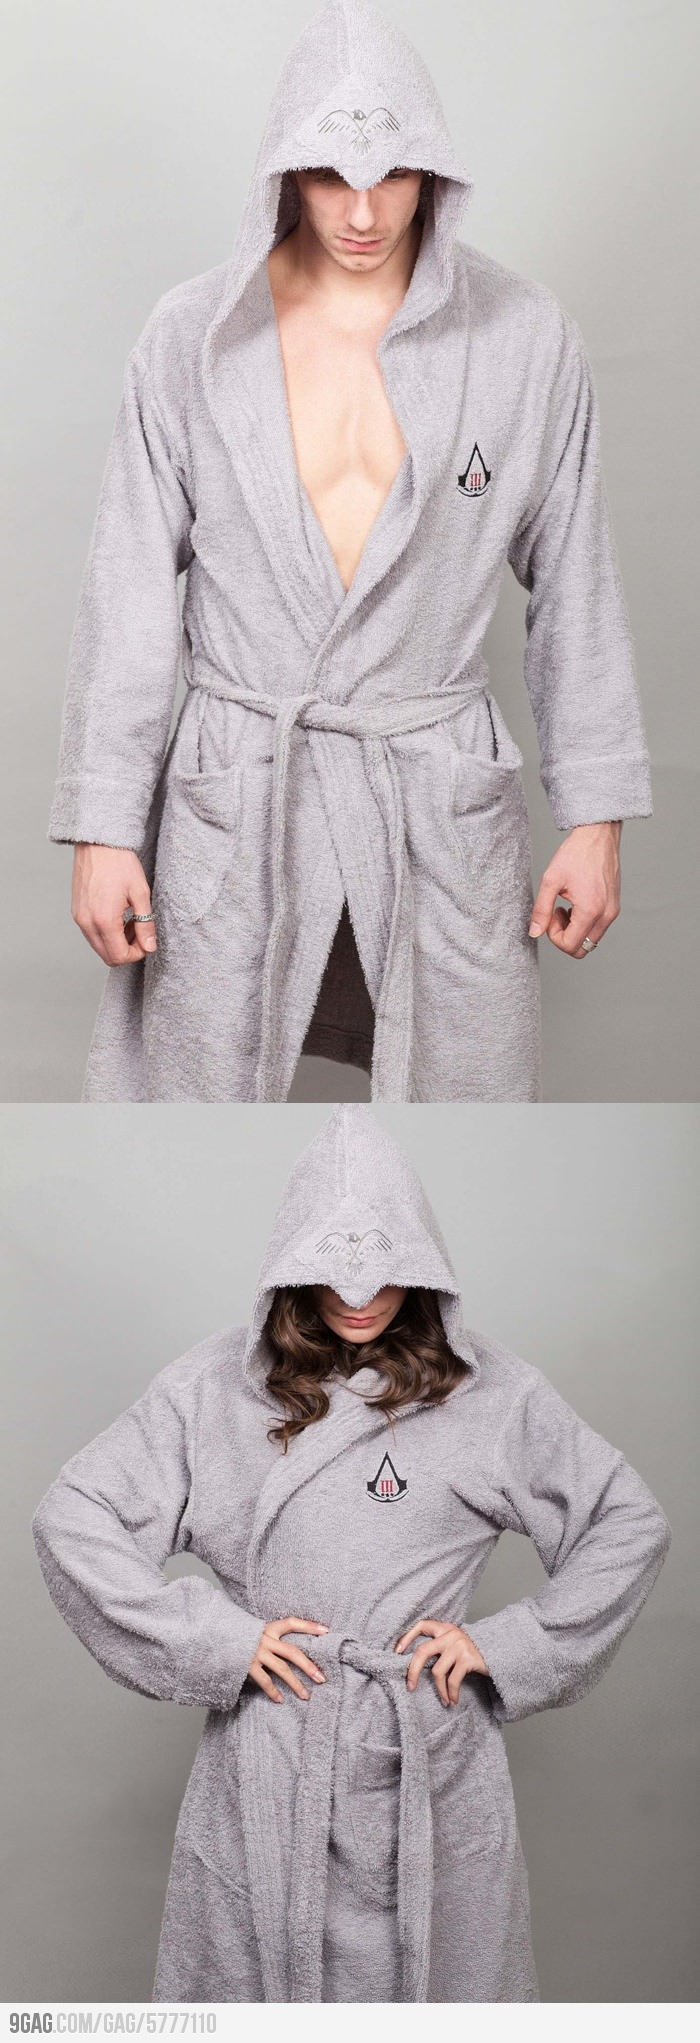 Assassin Bathrobe (totally eyeing the guy and not the robe)